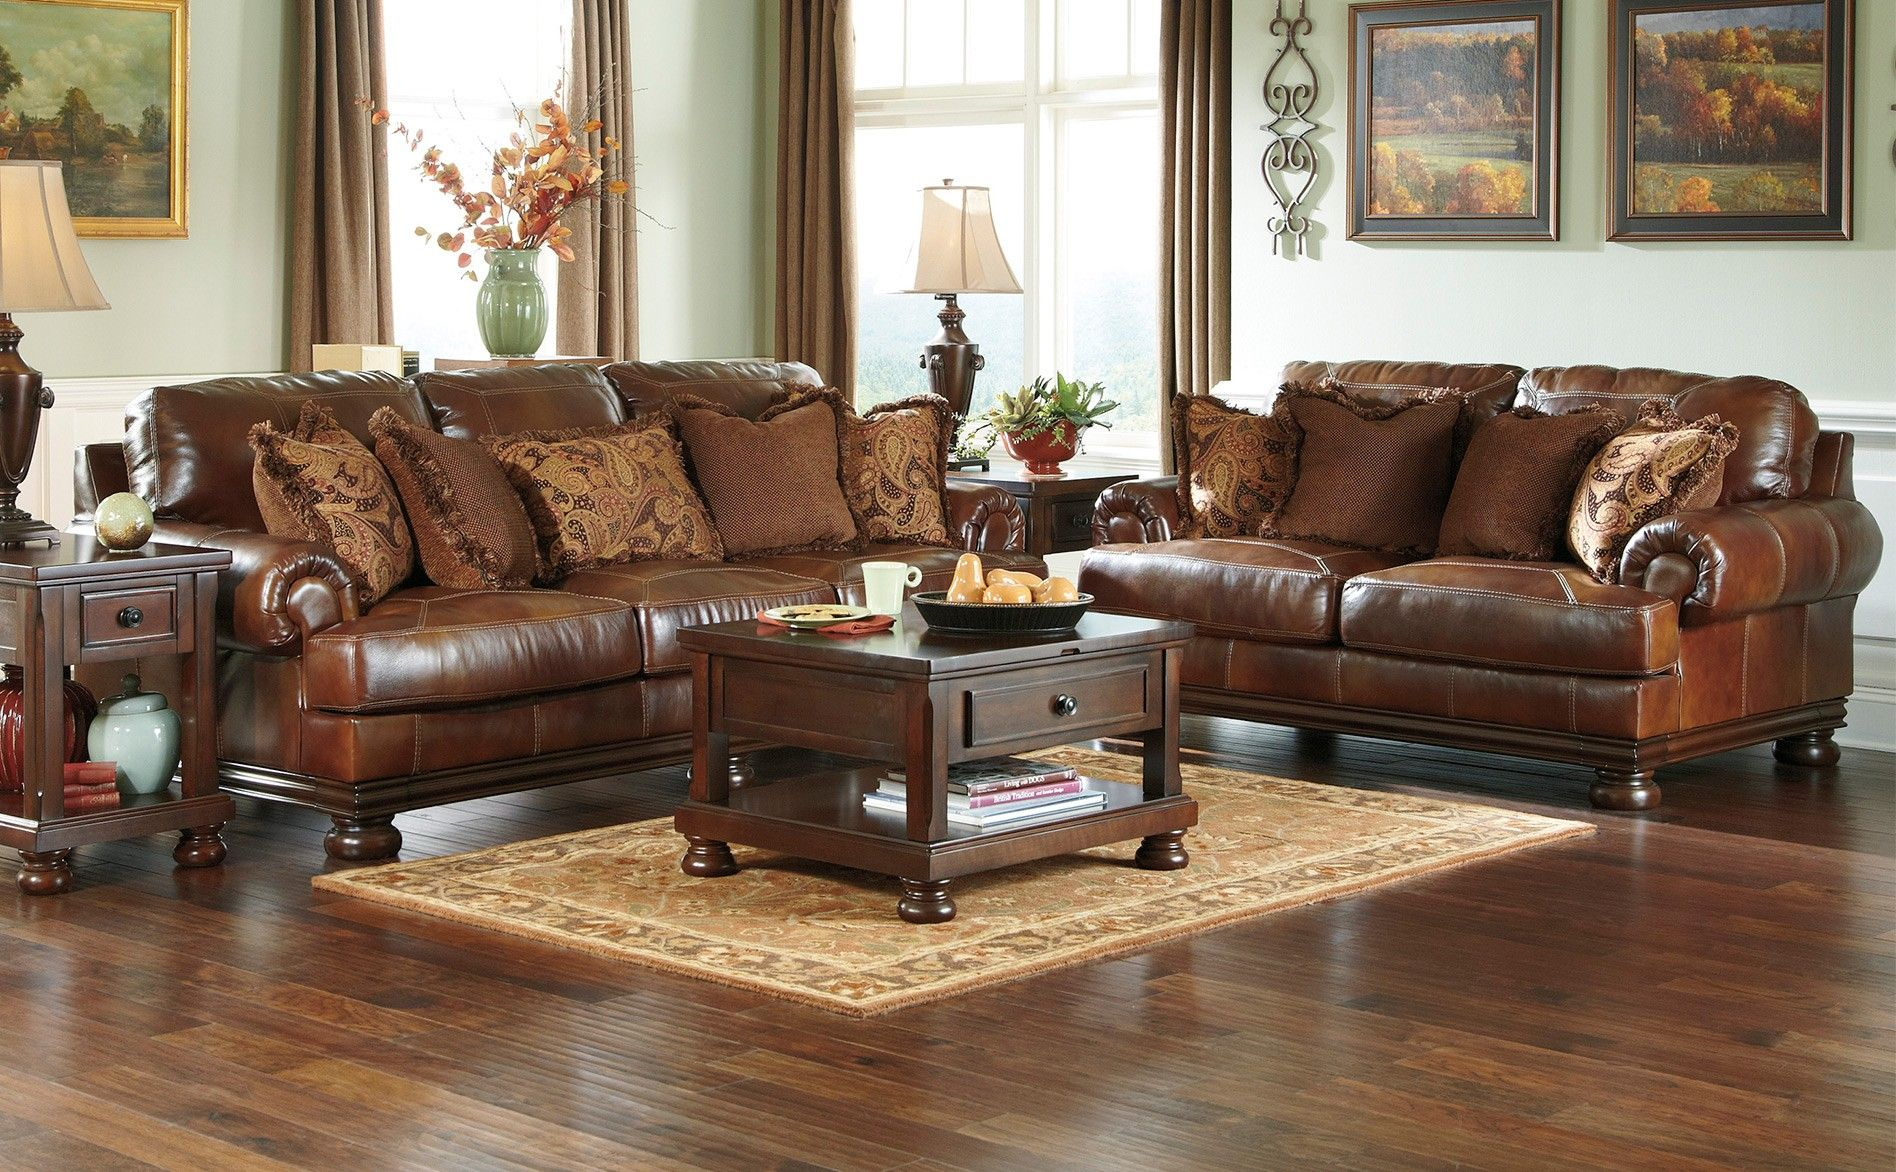 ashley furniture leather - Google Search | Living room ...